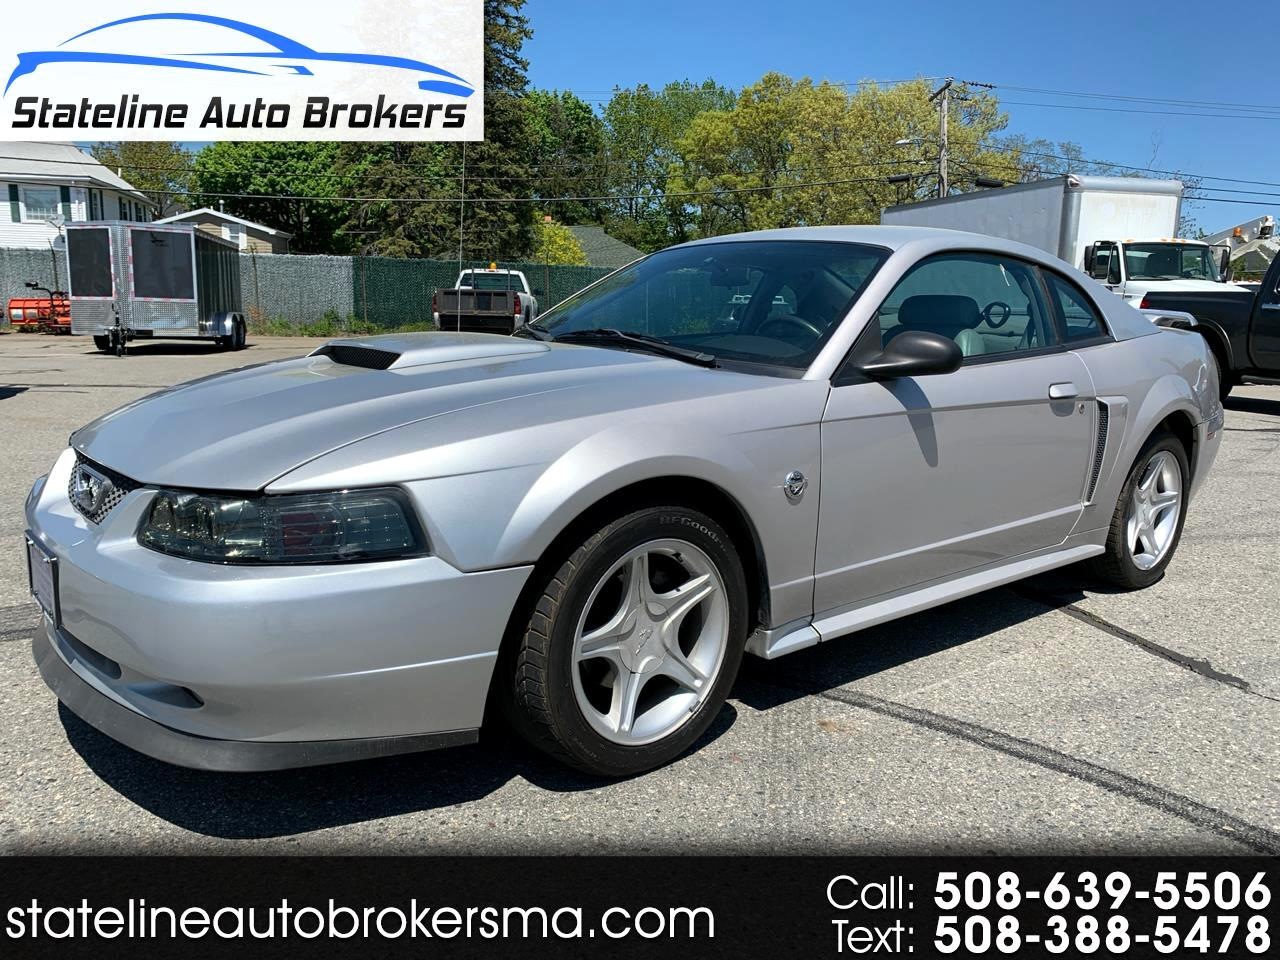 Ford Mustang 2dr Cpe GT Deluxe 2004